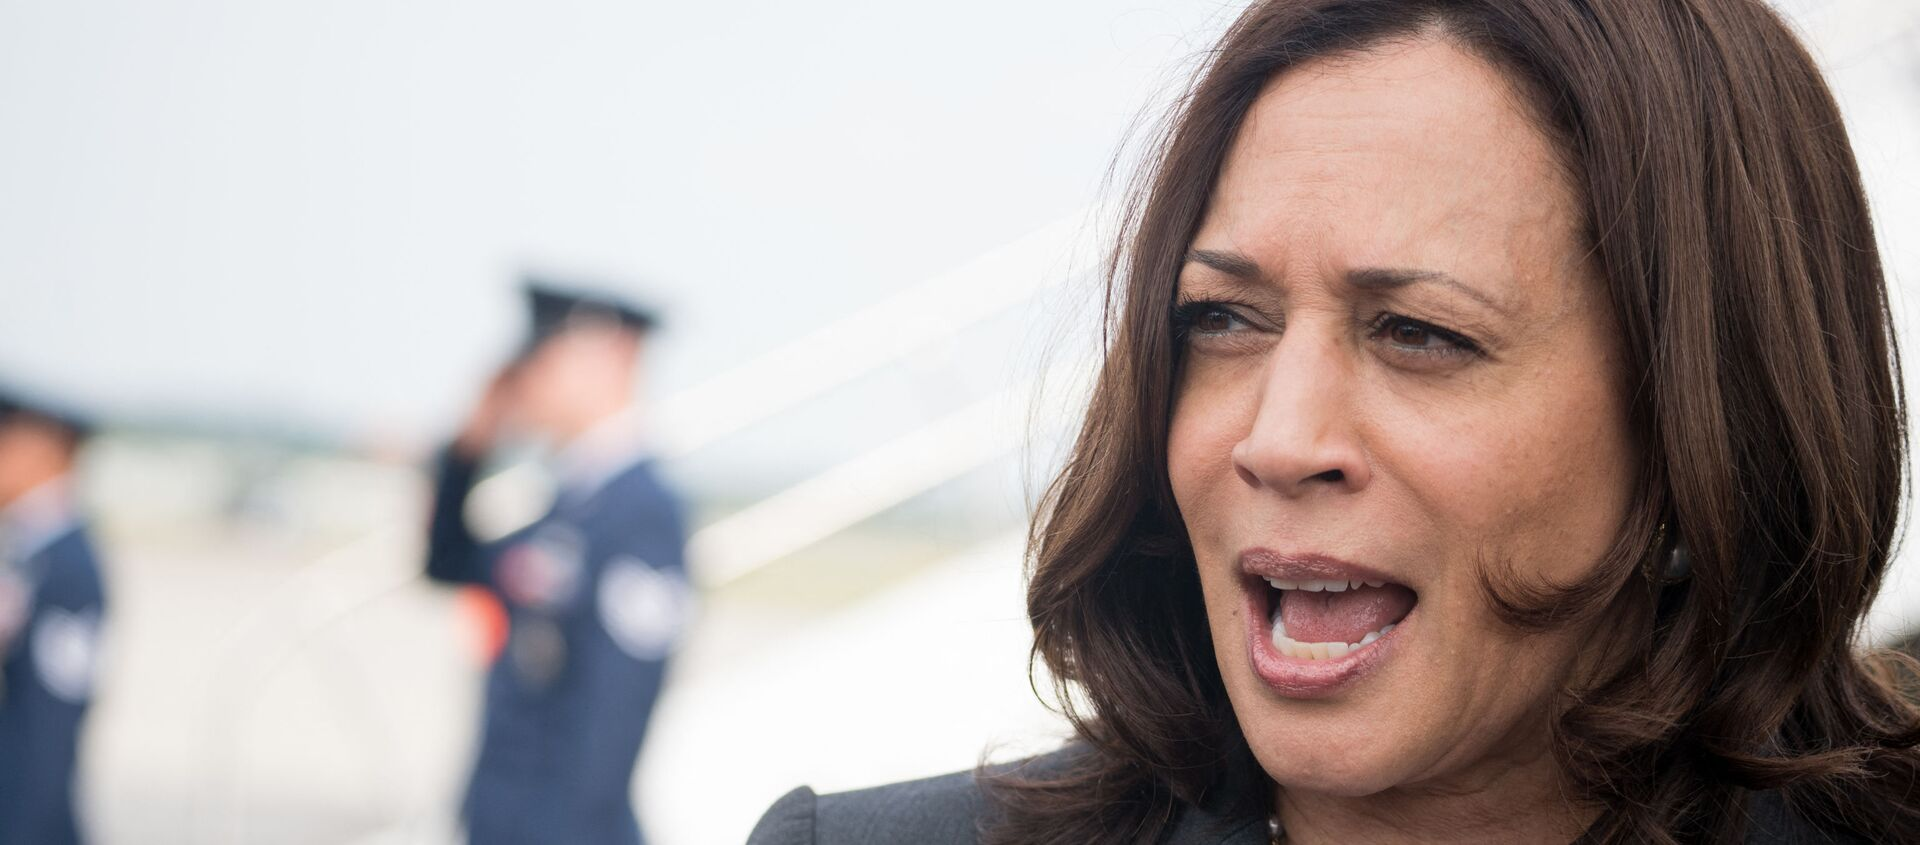 U.S. Vice President Kamala Harris speaks with the media at Hartsfield Jackson International Airport before boarding Air Force Two back to Washington DC on June 18, 2021 in Atlanta, Georgia. Vice President Harris is visiting Atlanta as part of a nationwide tour to encourage Americans to get vaccinated.  - Sputnik International, 1920, 23.06.2021